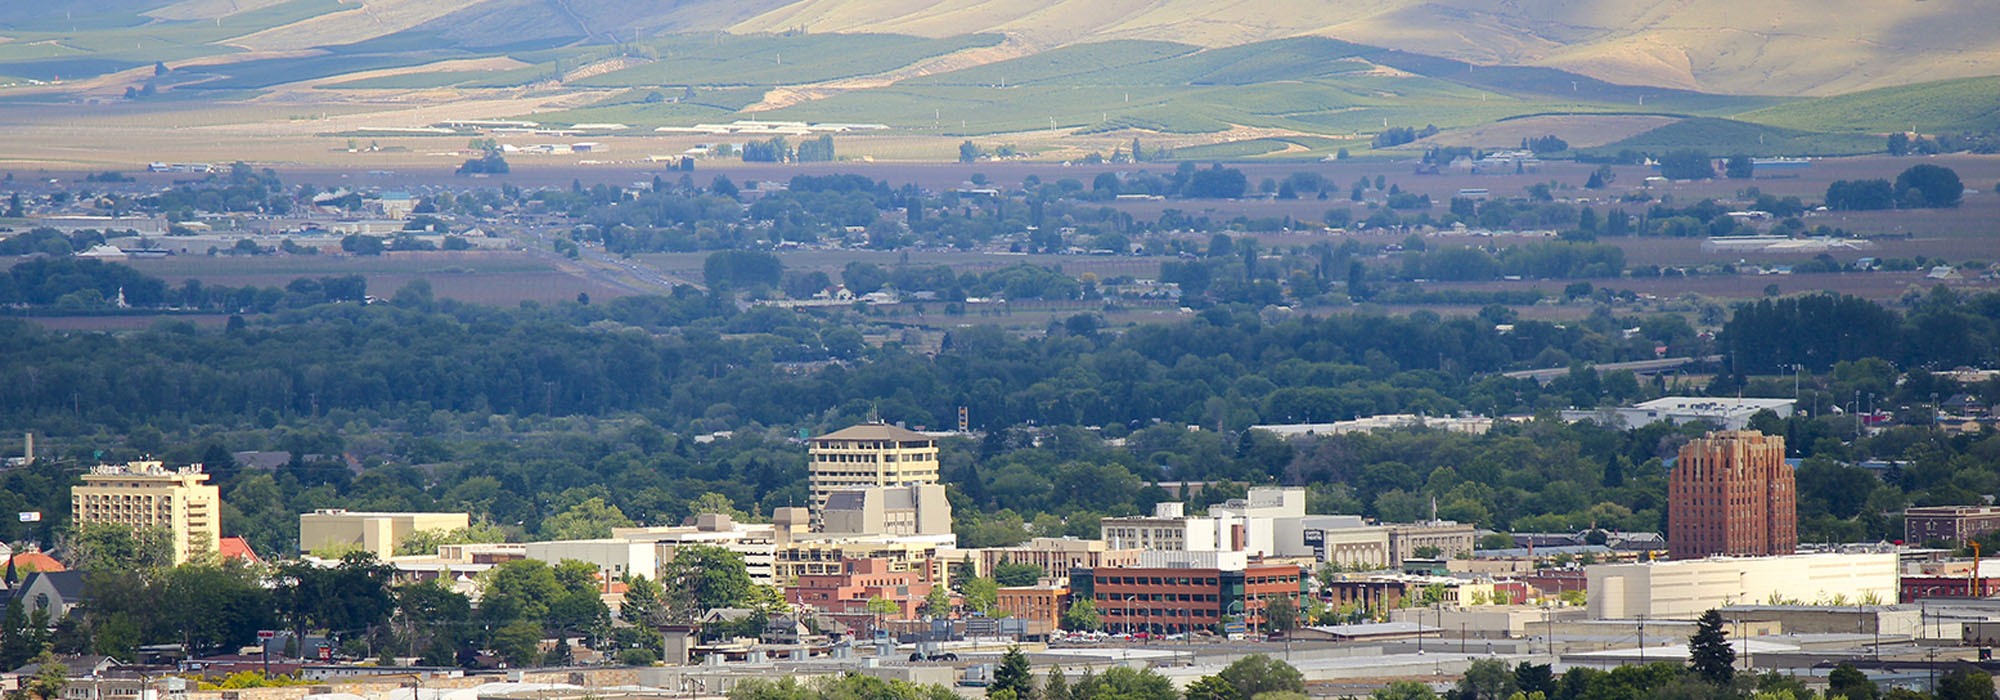 Yakima Valley Trends Focus